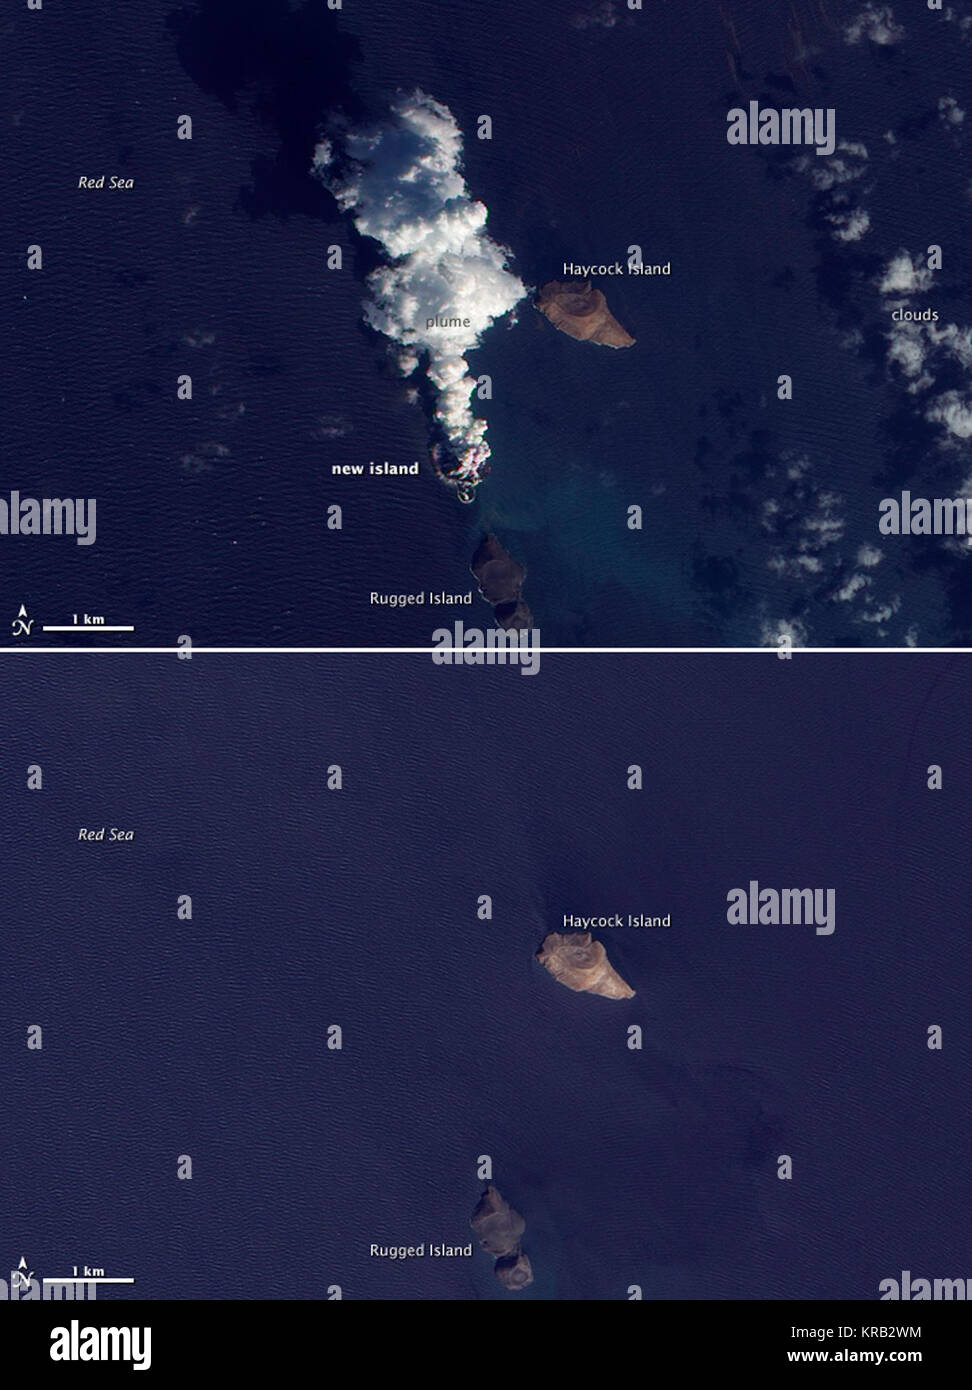 Top image: acquired December 23, 2011.  Bottom image: acquired October 24, 2007  An eruption occurred in the Red - Stock Image